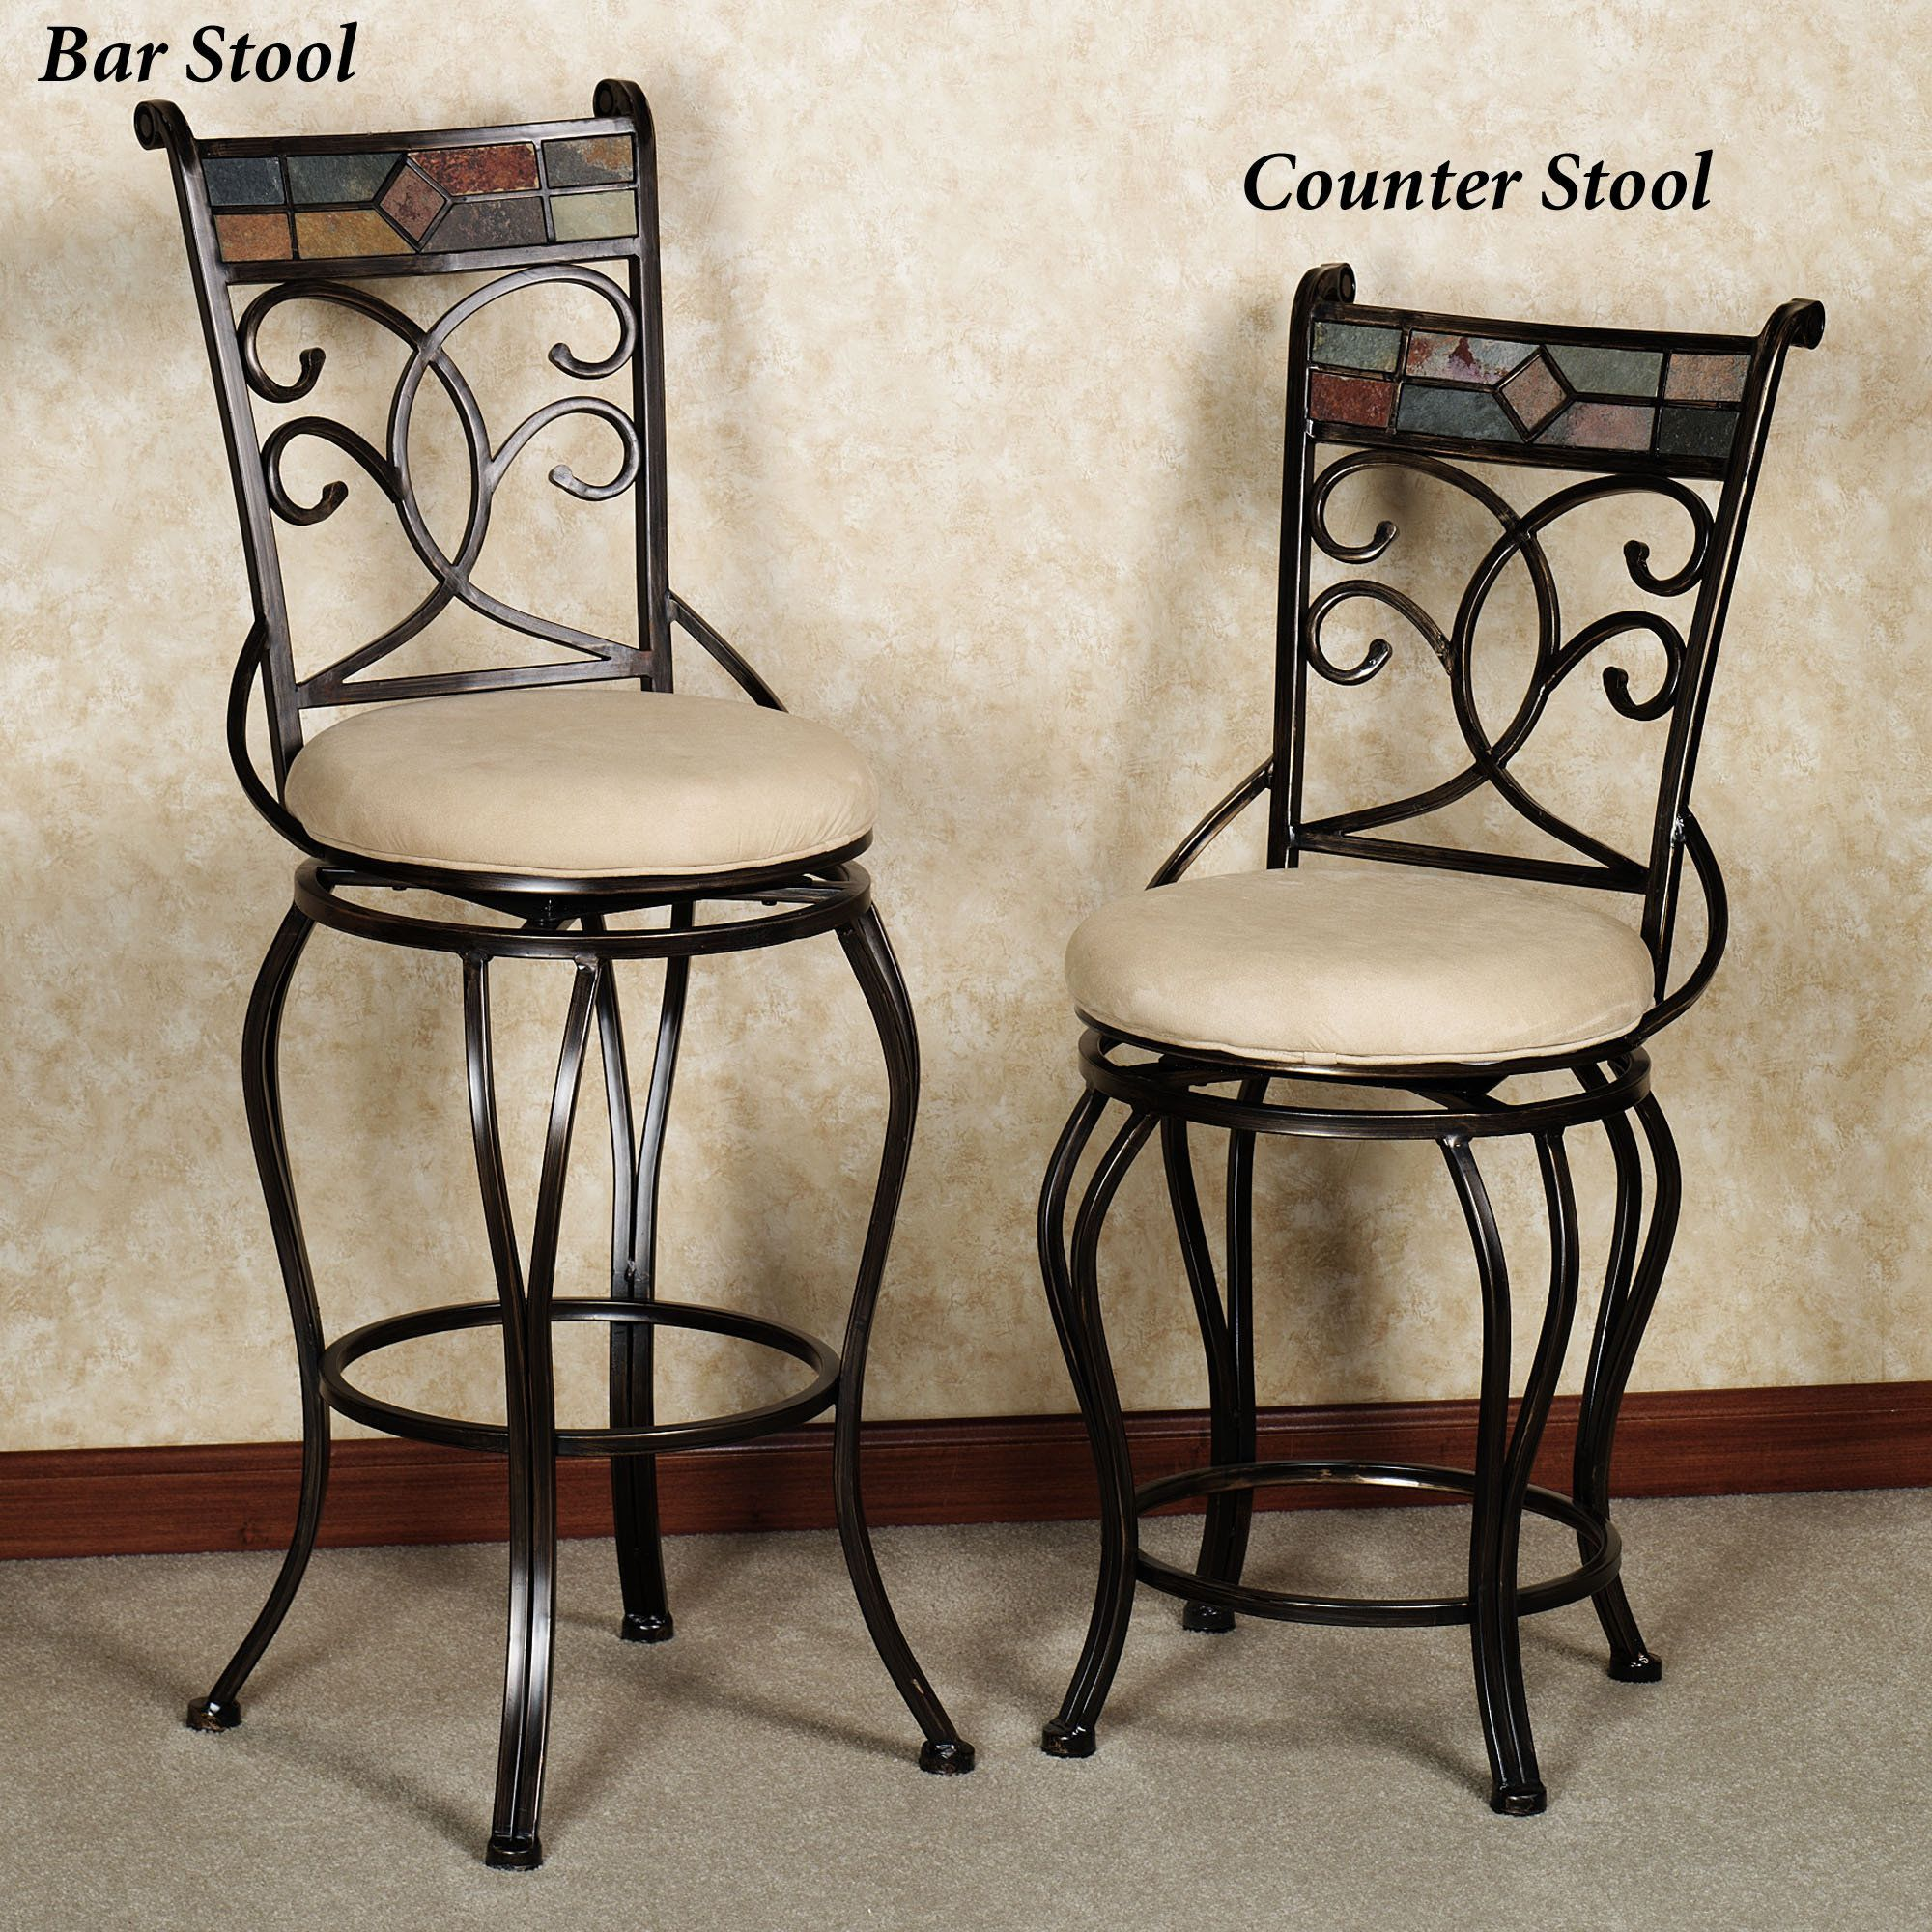 Kitchen Swivel Bar Stools Terran Metal Swivel Bar And Counter Stools Kitchen Decor